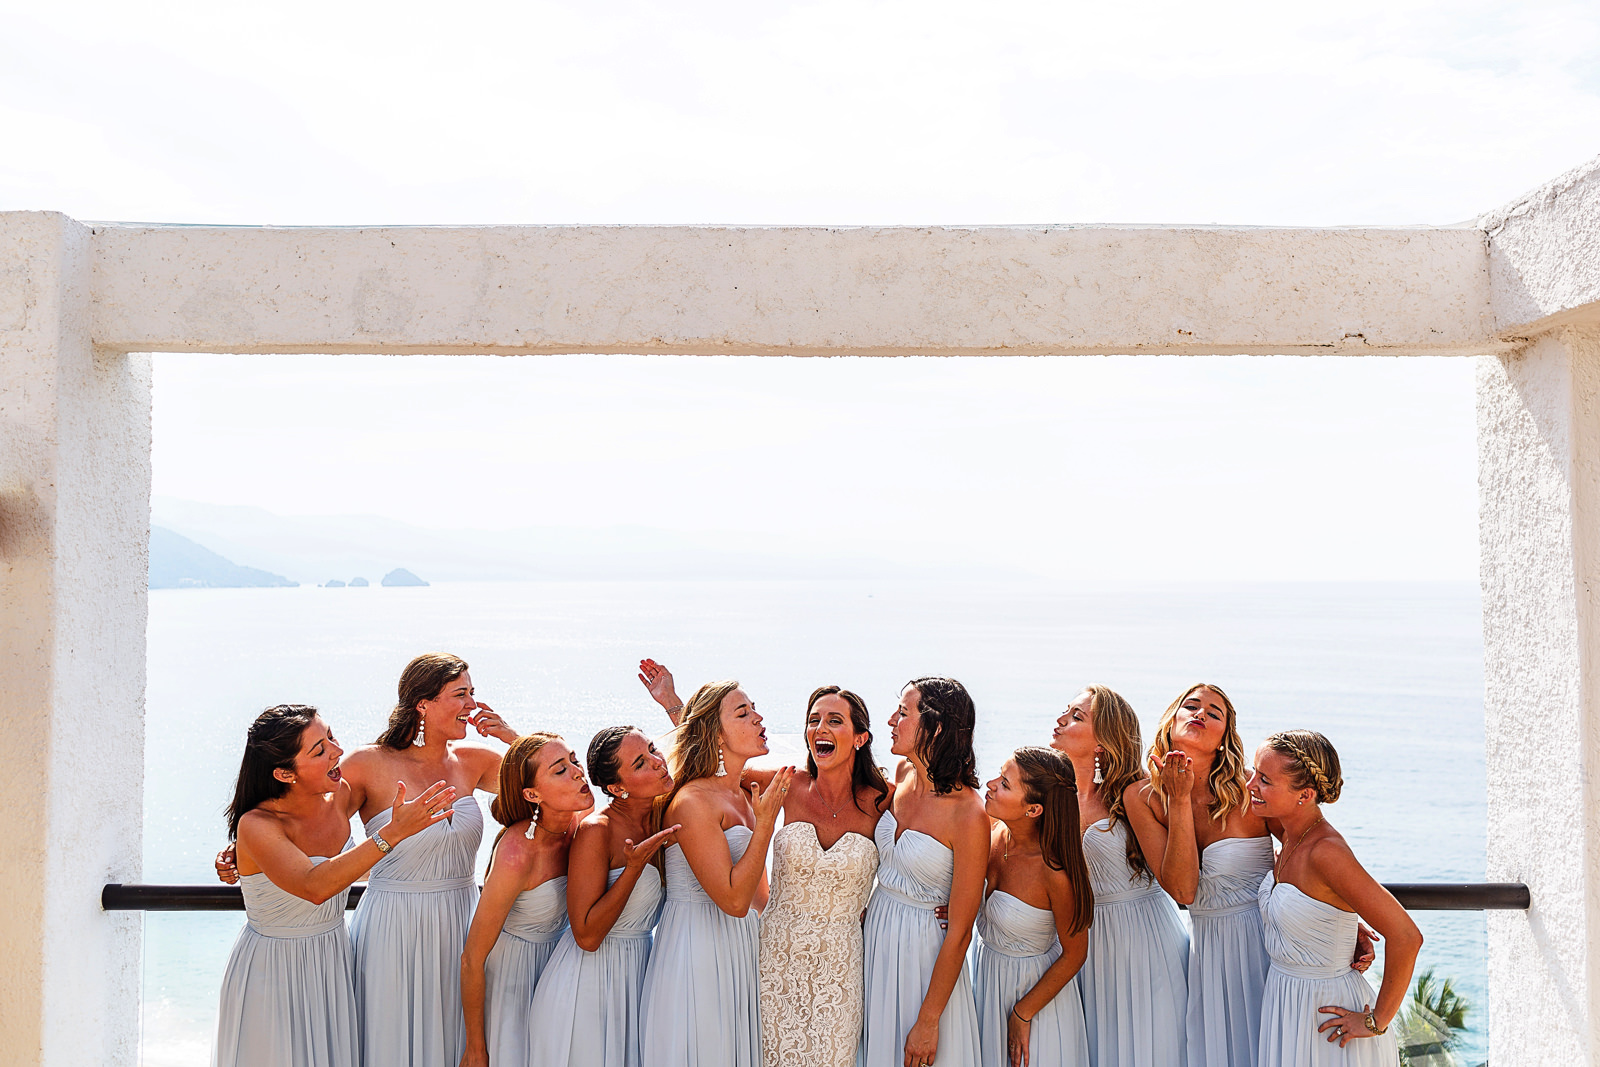 Bride and bridesmaids portrait at the terrace of the suite in Hyatt Ziva resort - Eder Acevedo cancun los cabos vallarta wedding photographer